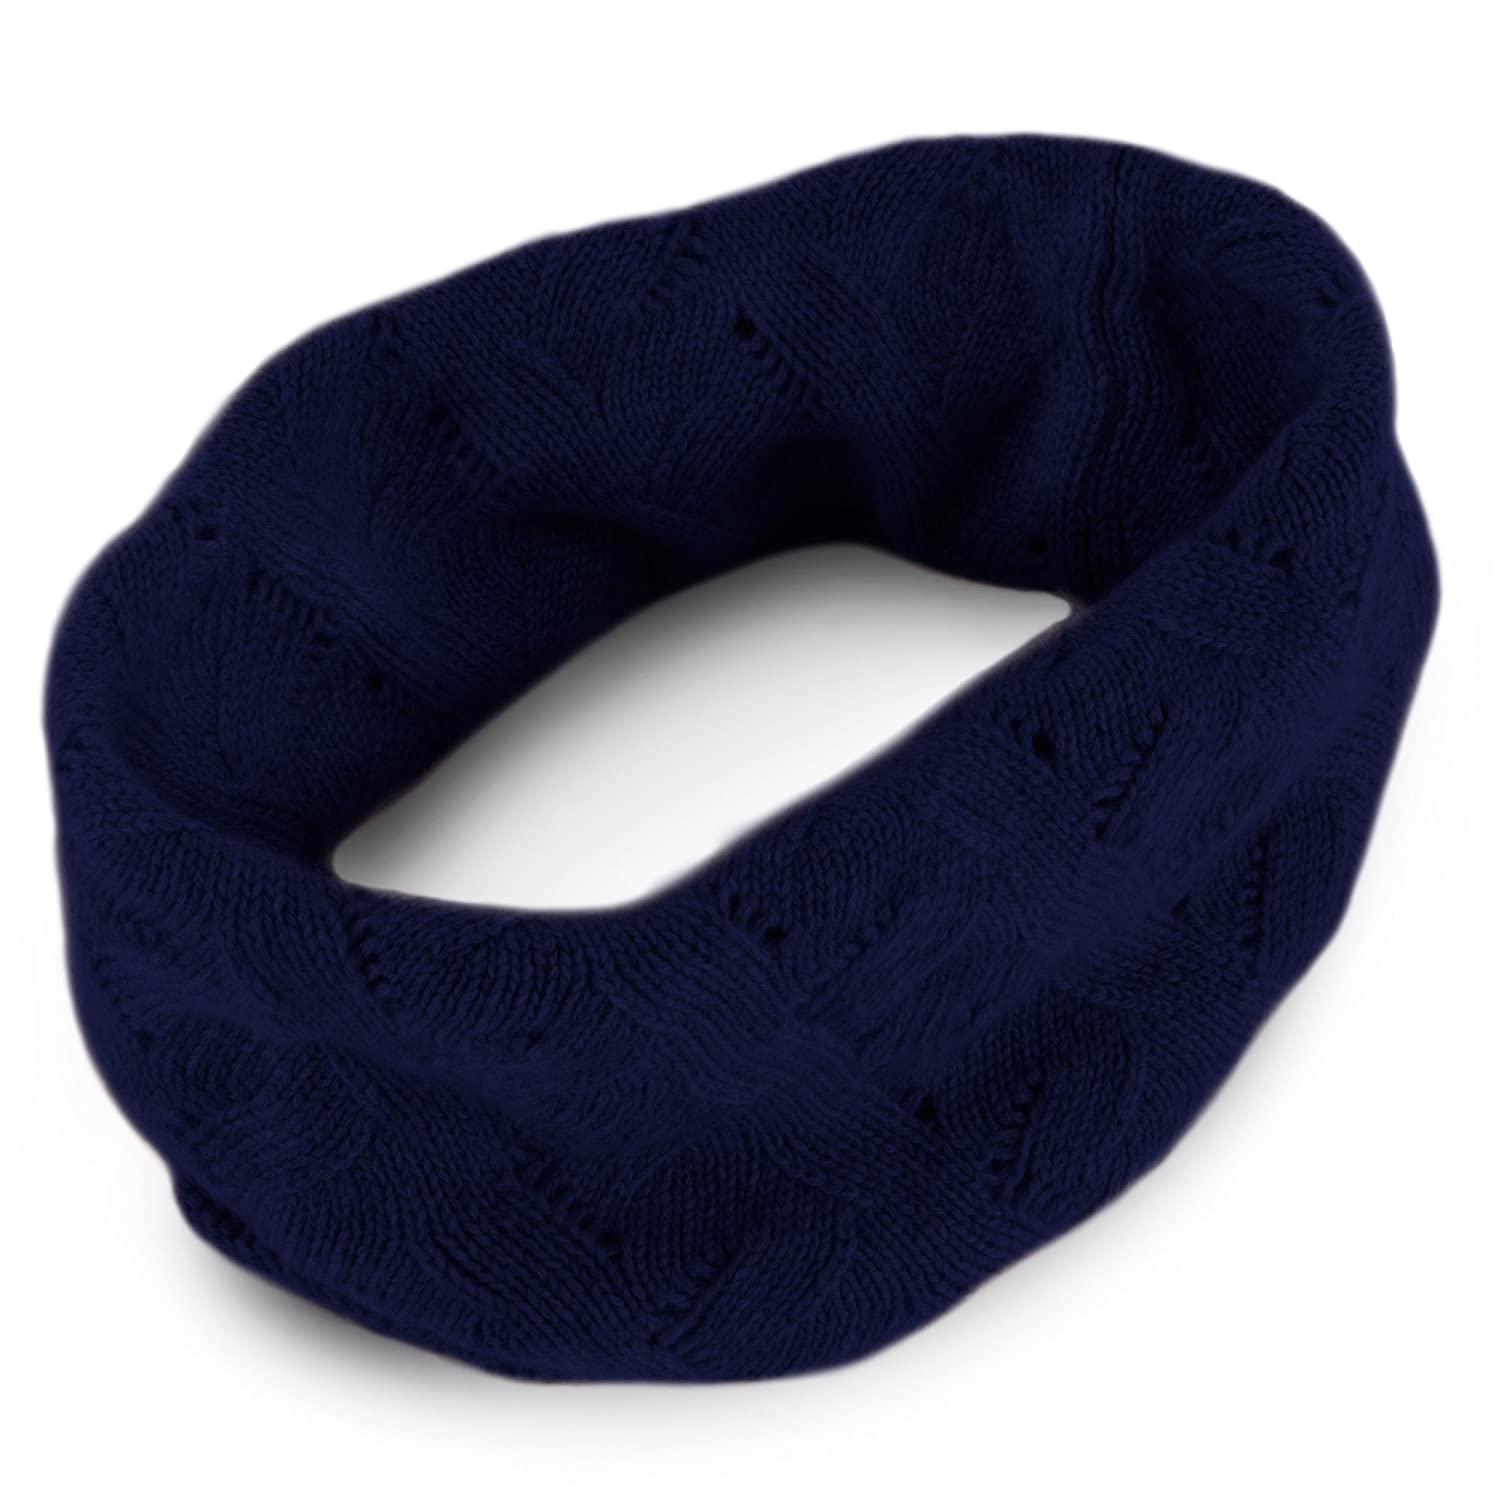 Ladies 100% Cashmere Infinity Scarf Snood - Black - hand made in Scotland by Love Cashmere LC041_black